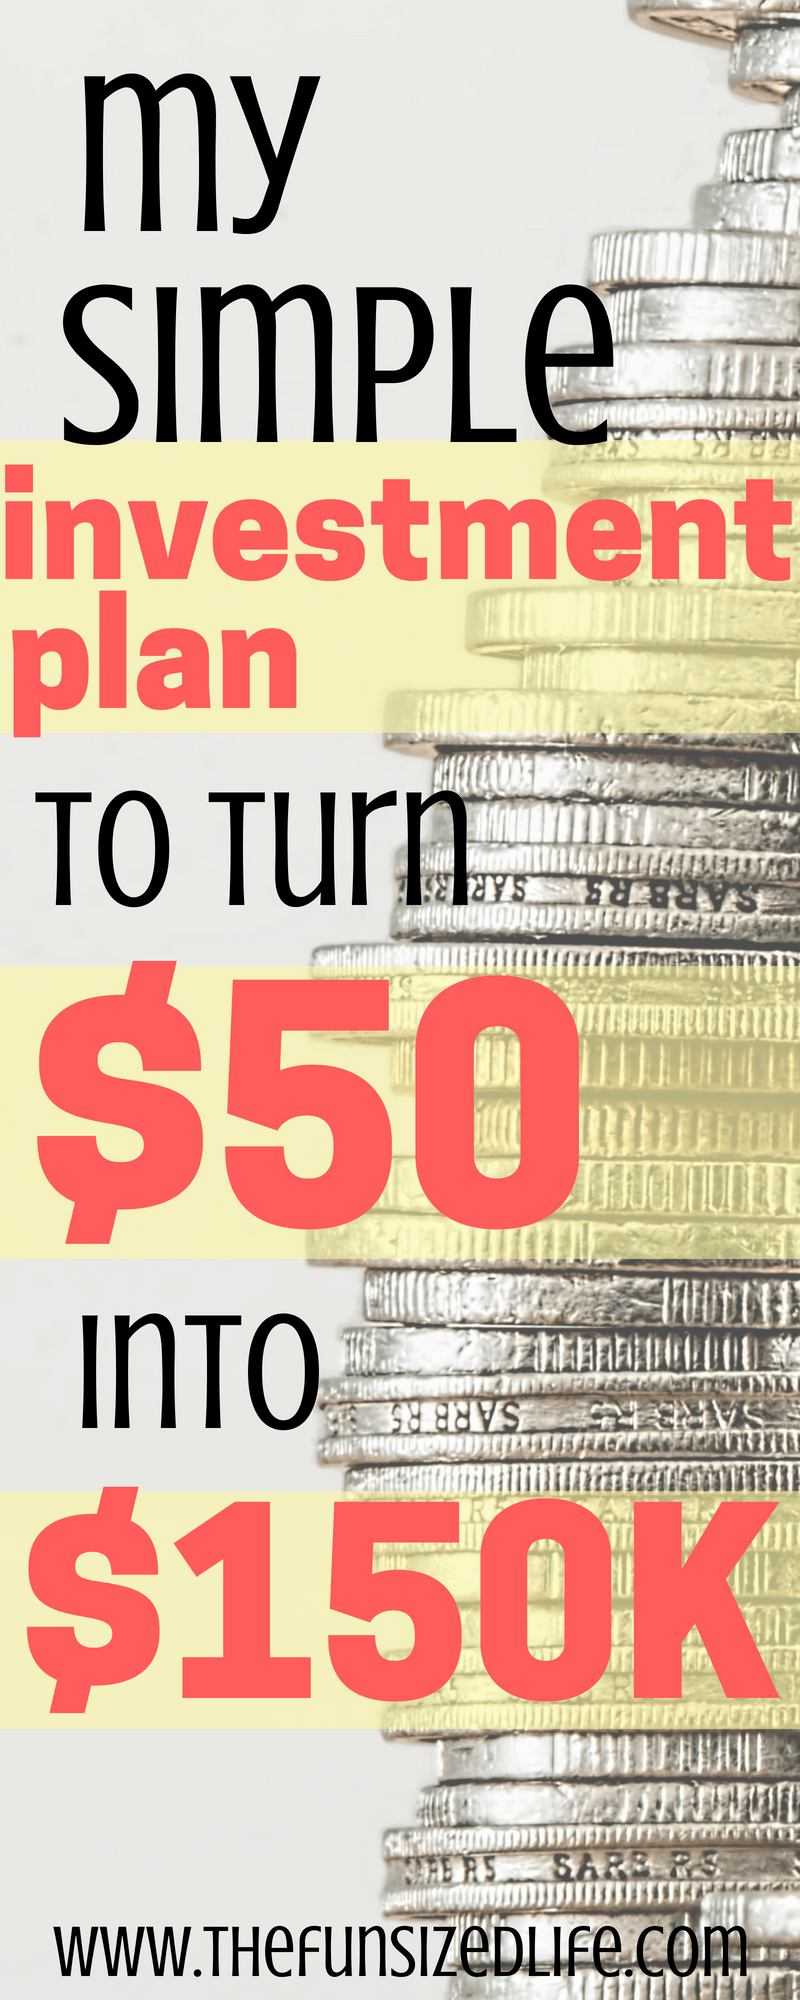 If you have never invested before you need to see this post! It's crazy how easily you can get started. #investing #makemoney #budget #money